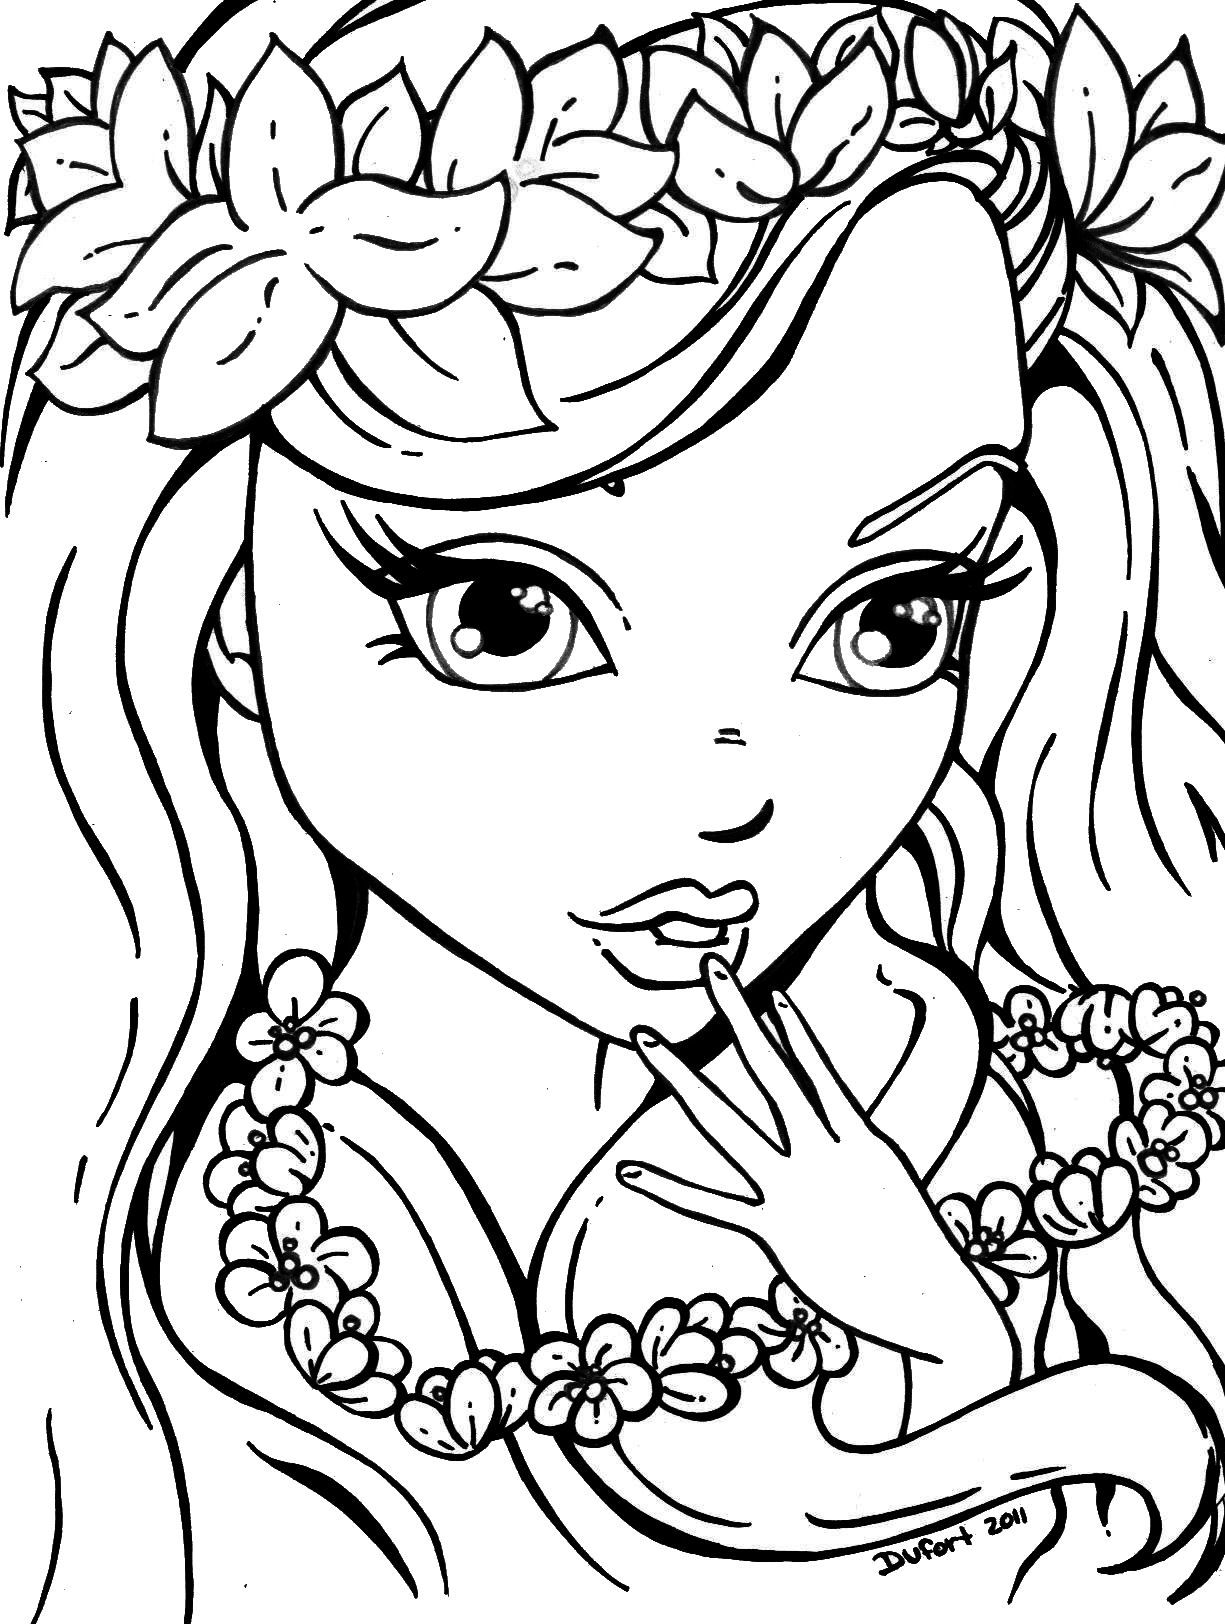 coloring sheet things to color cute coloring pages best coloring pages for kids coloring to sheet things color